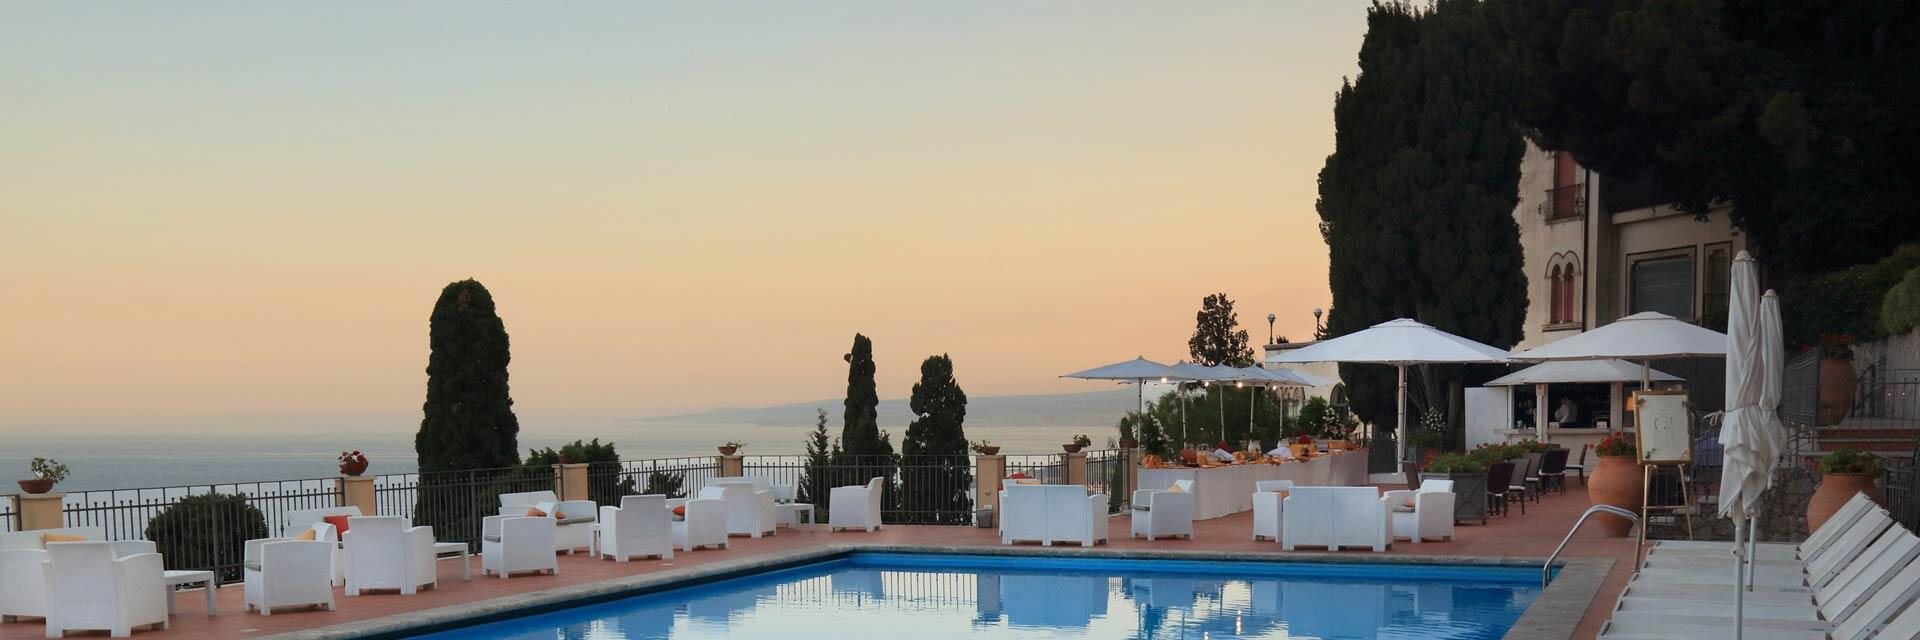 sanpietrotaormina en offer-day-use-5-star-luxury-in-taormina-with-spa-lunch-and-fitness-centre 012